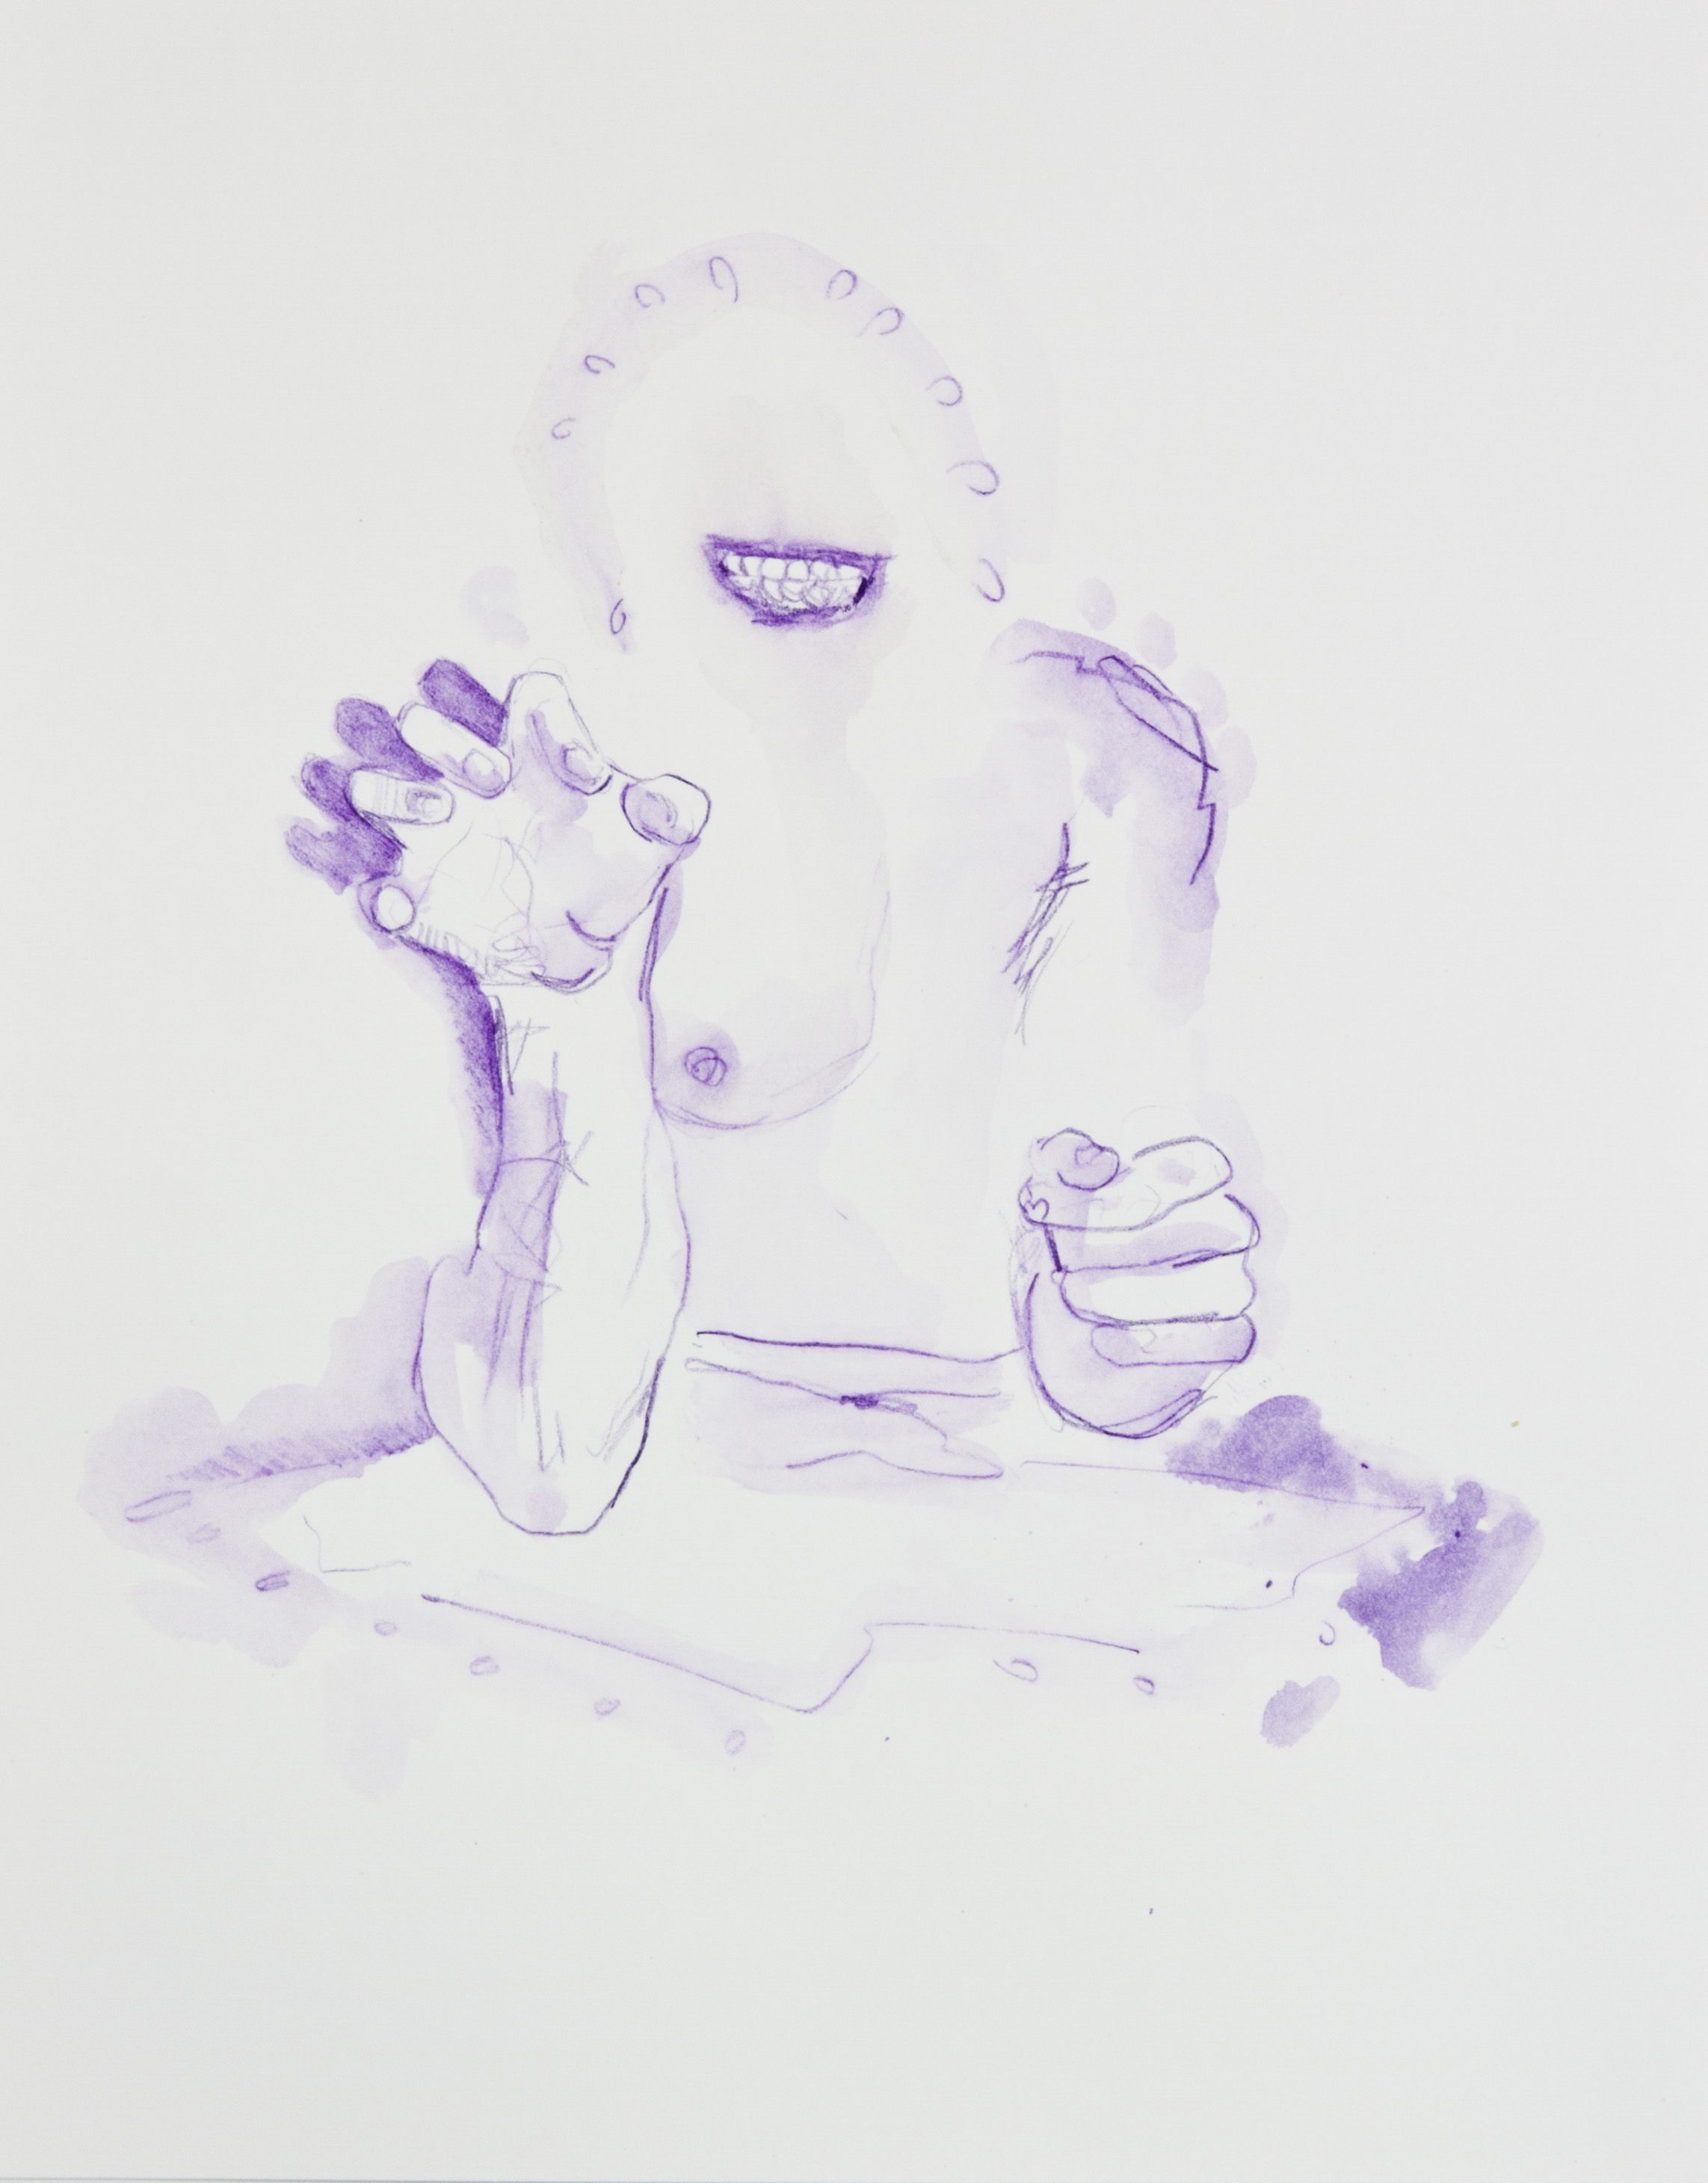 Purple Snarl Thingy, 2013, graphite, crayon and watercolor pencil on paper, 11x14 inches